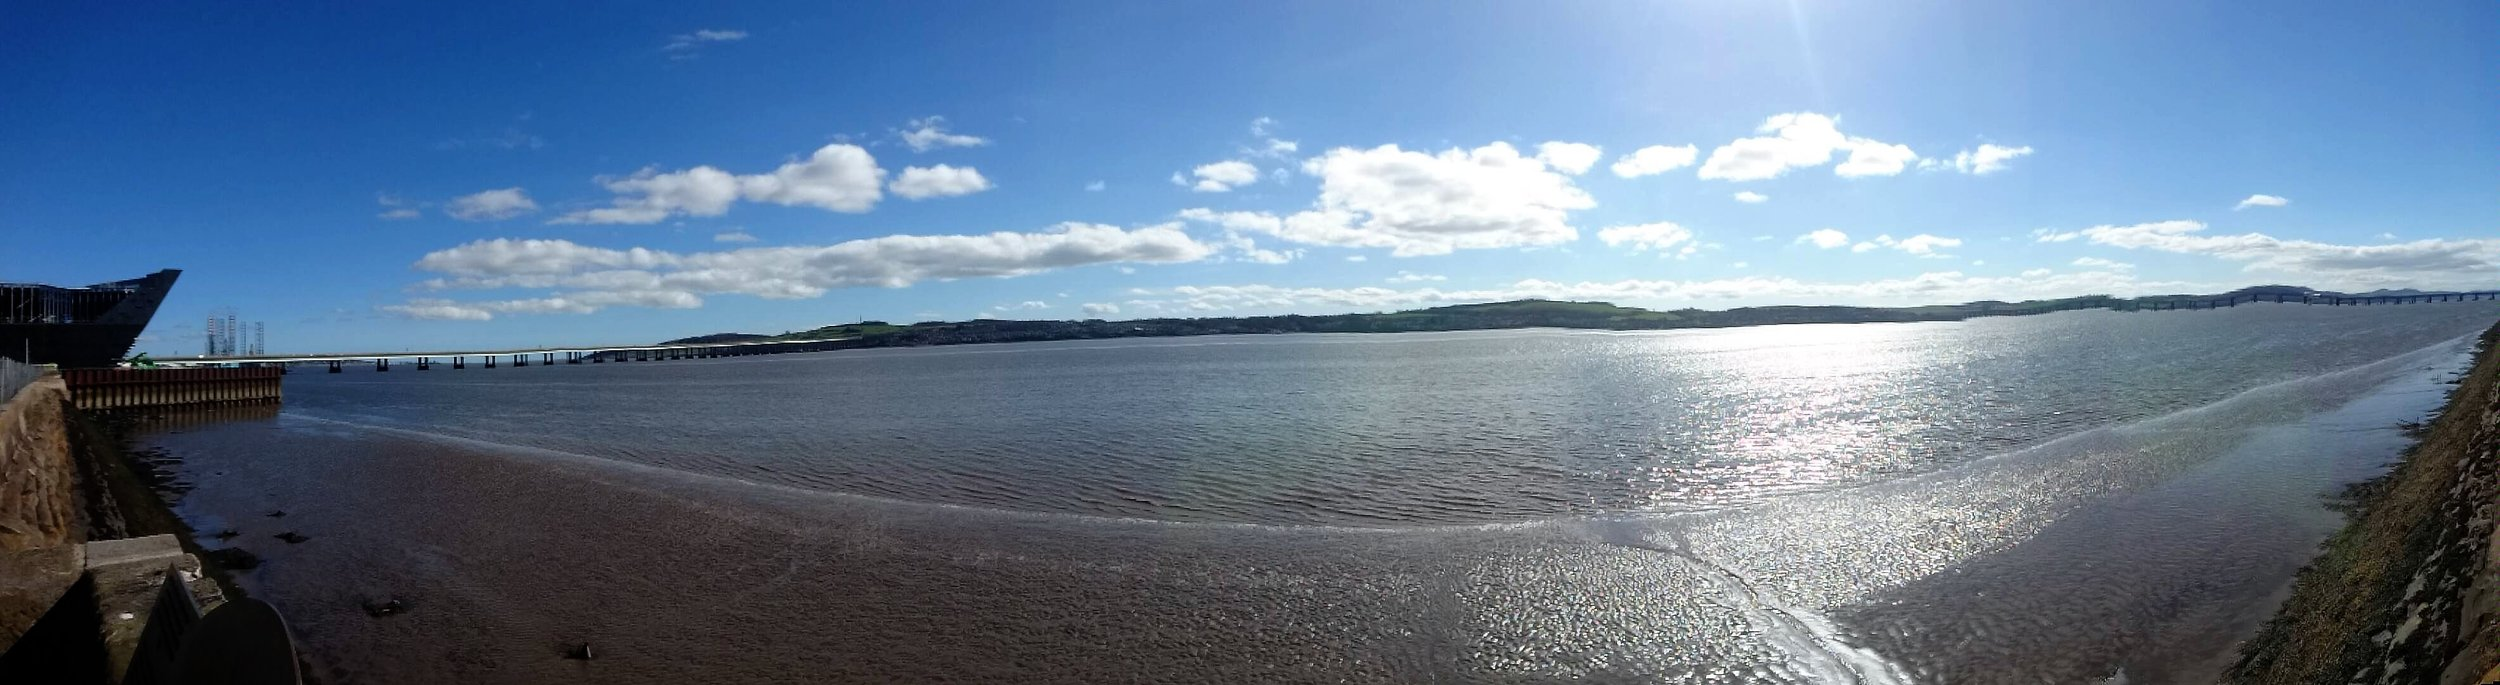 A view of the Firth of Tay, Dundee / Jenny Eve